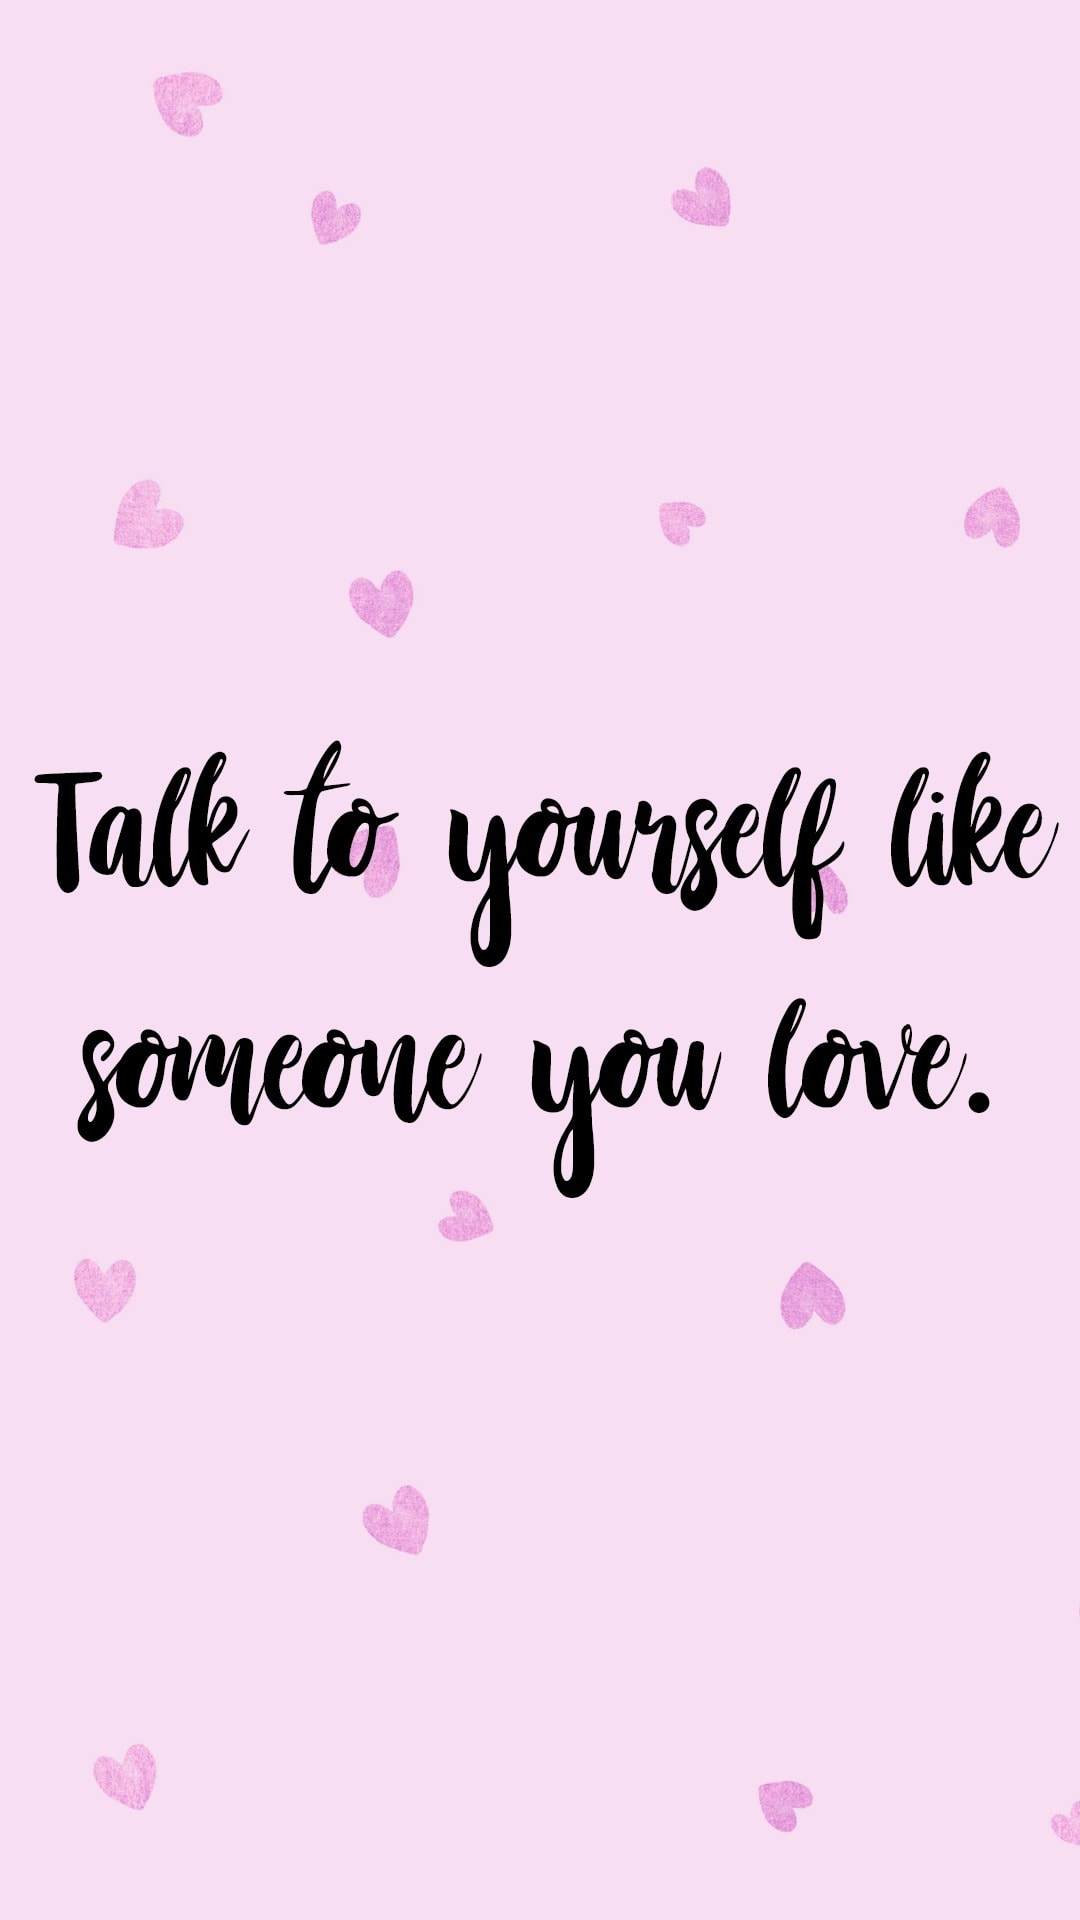 Talk to yourself like someone you love.